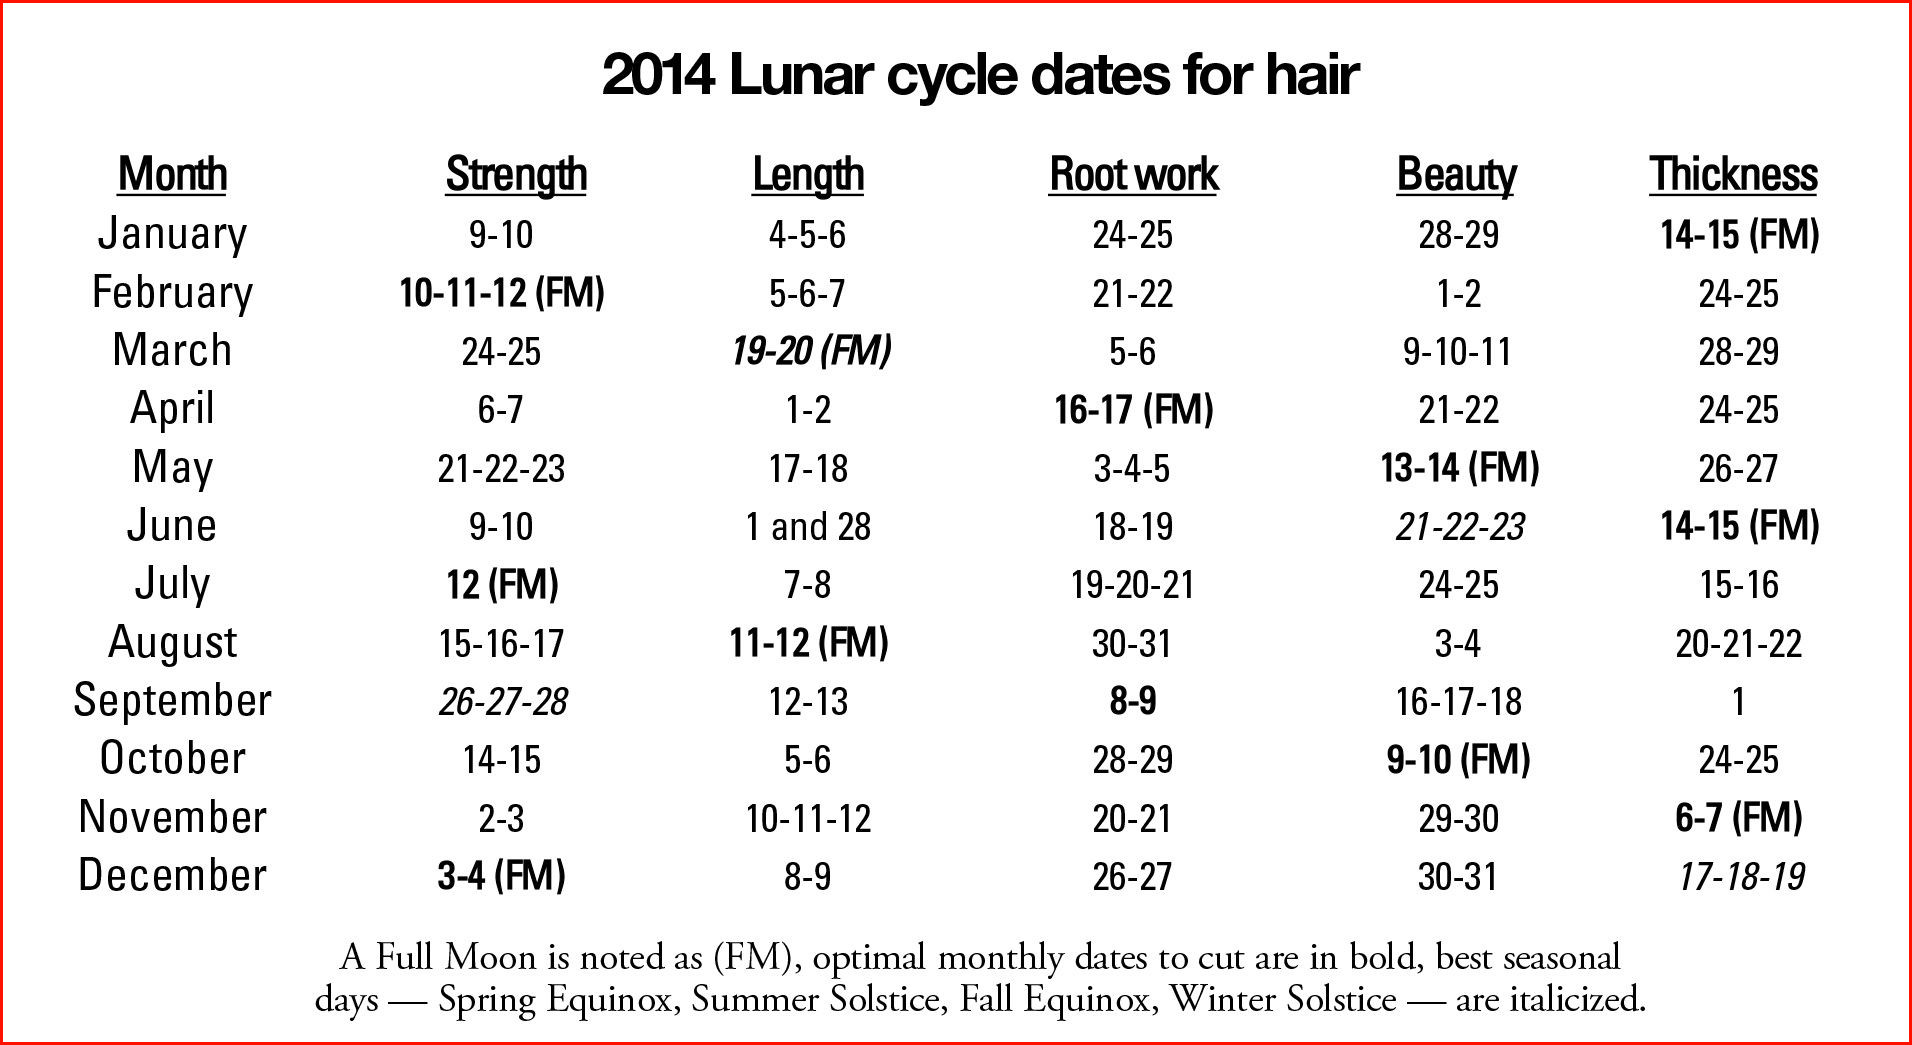 Cool Lunar Calendar Haircut Photos Of Haircuts Tutorials with Lunar Haircut Calendar 2020